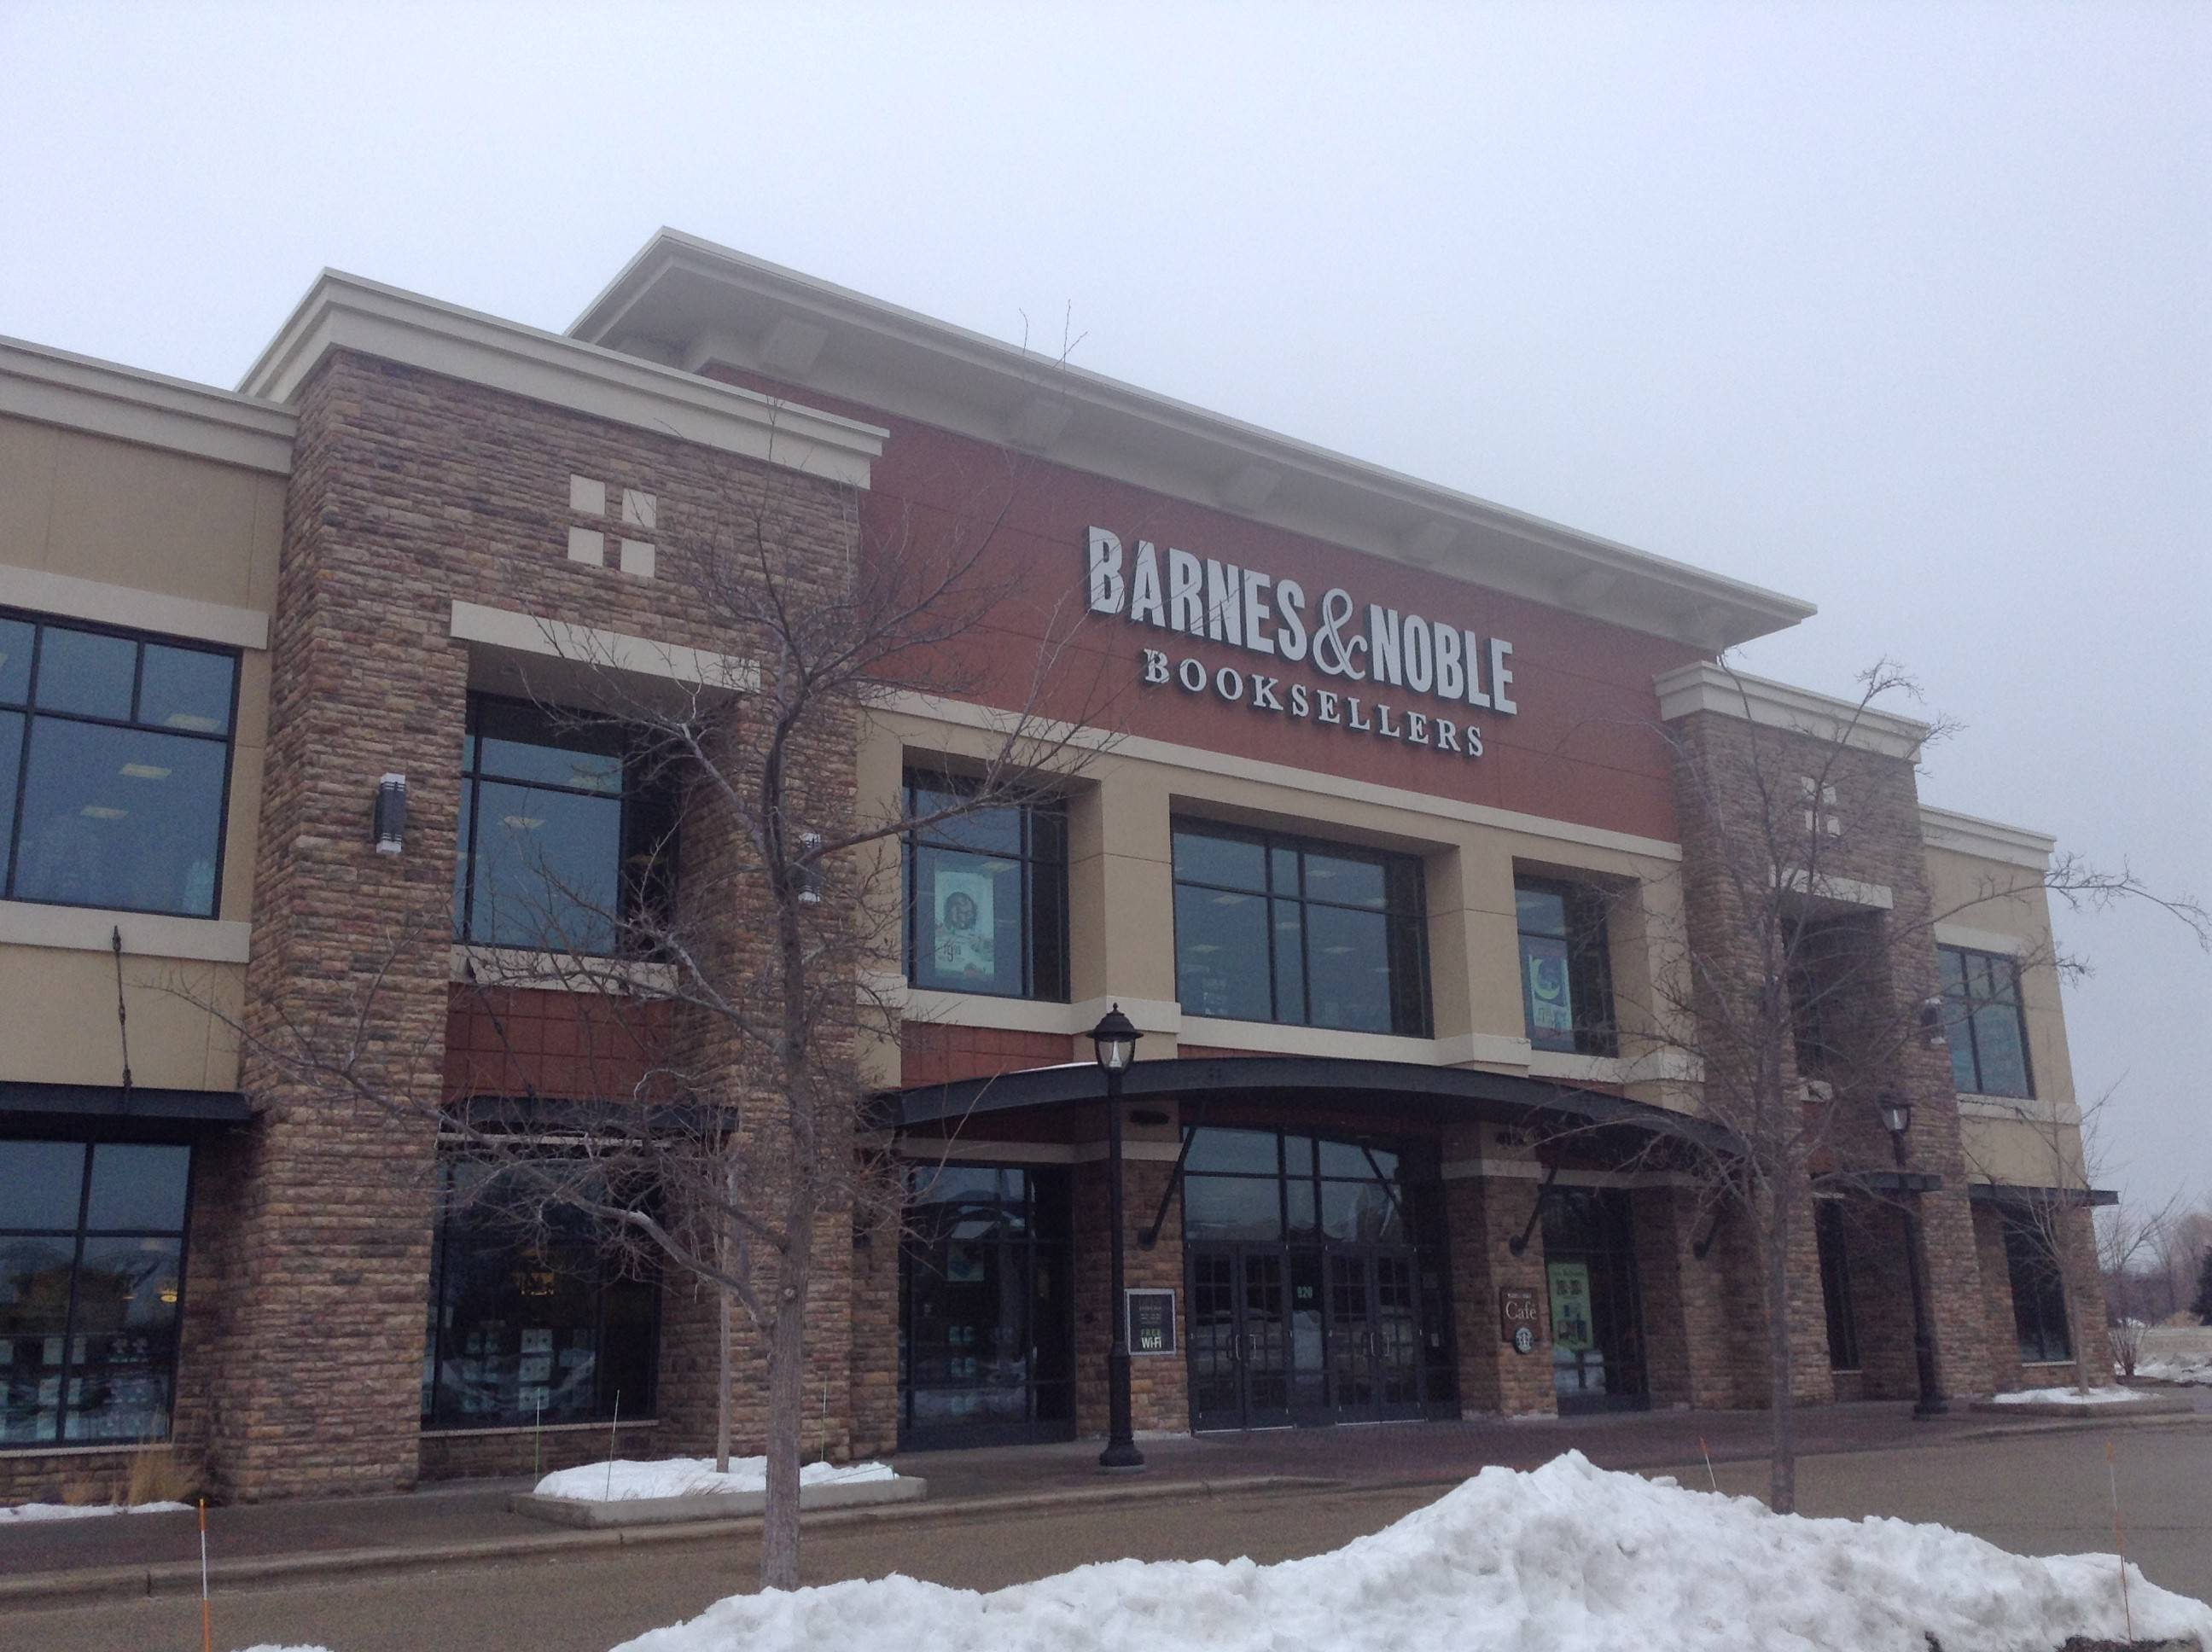 Lincolnshire Barnes & Noble could close this year, officials say